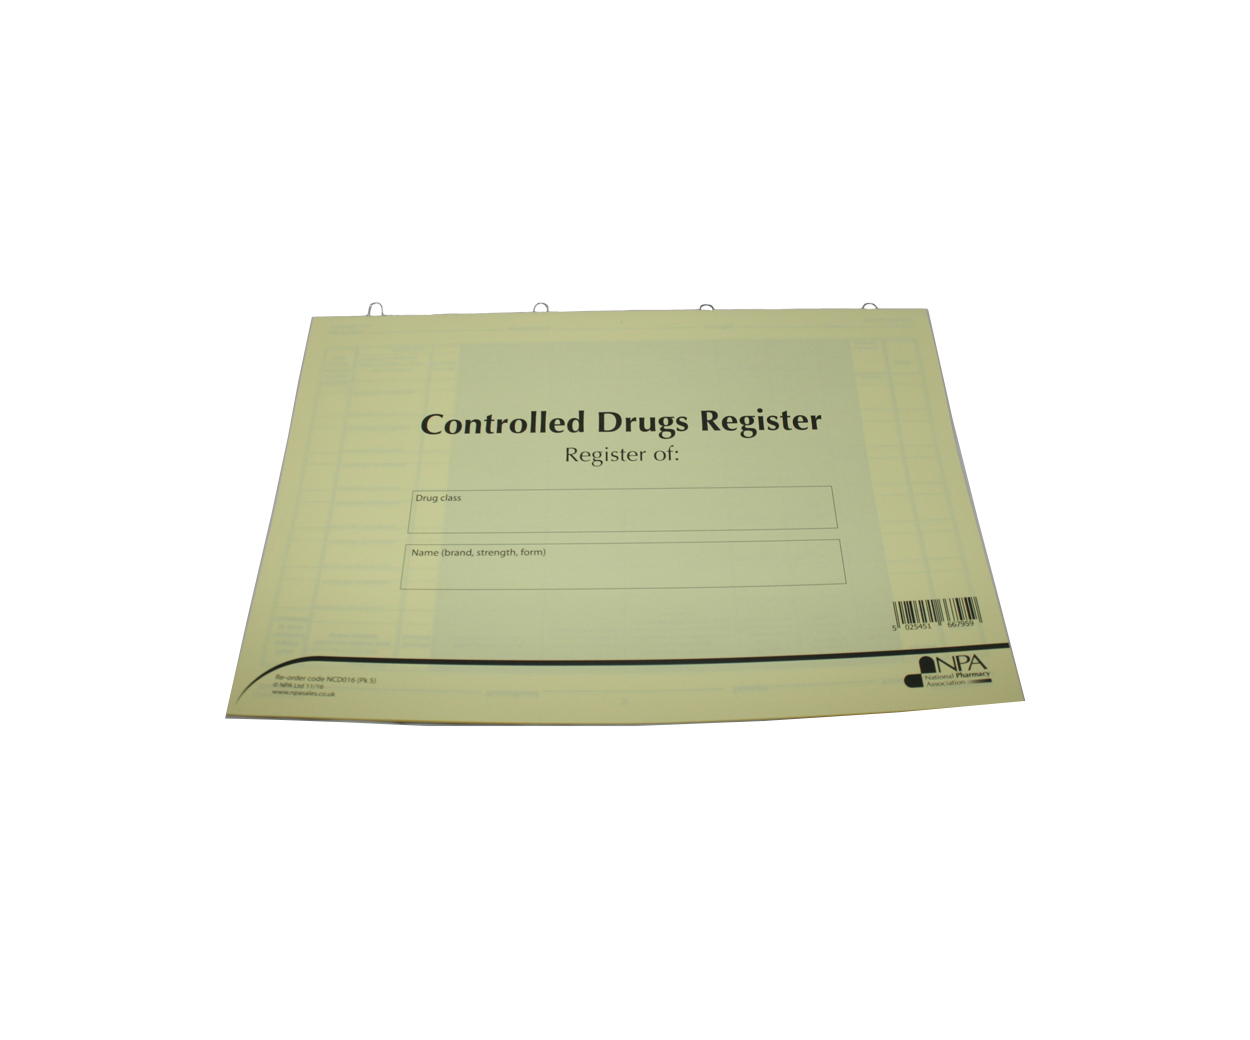 GREAT VALUE - Blank Controlled Drugs Register Inserts - Pack of 3